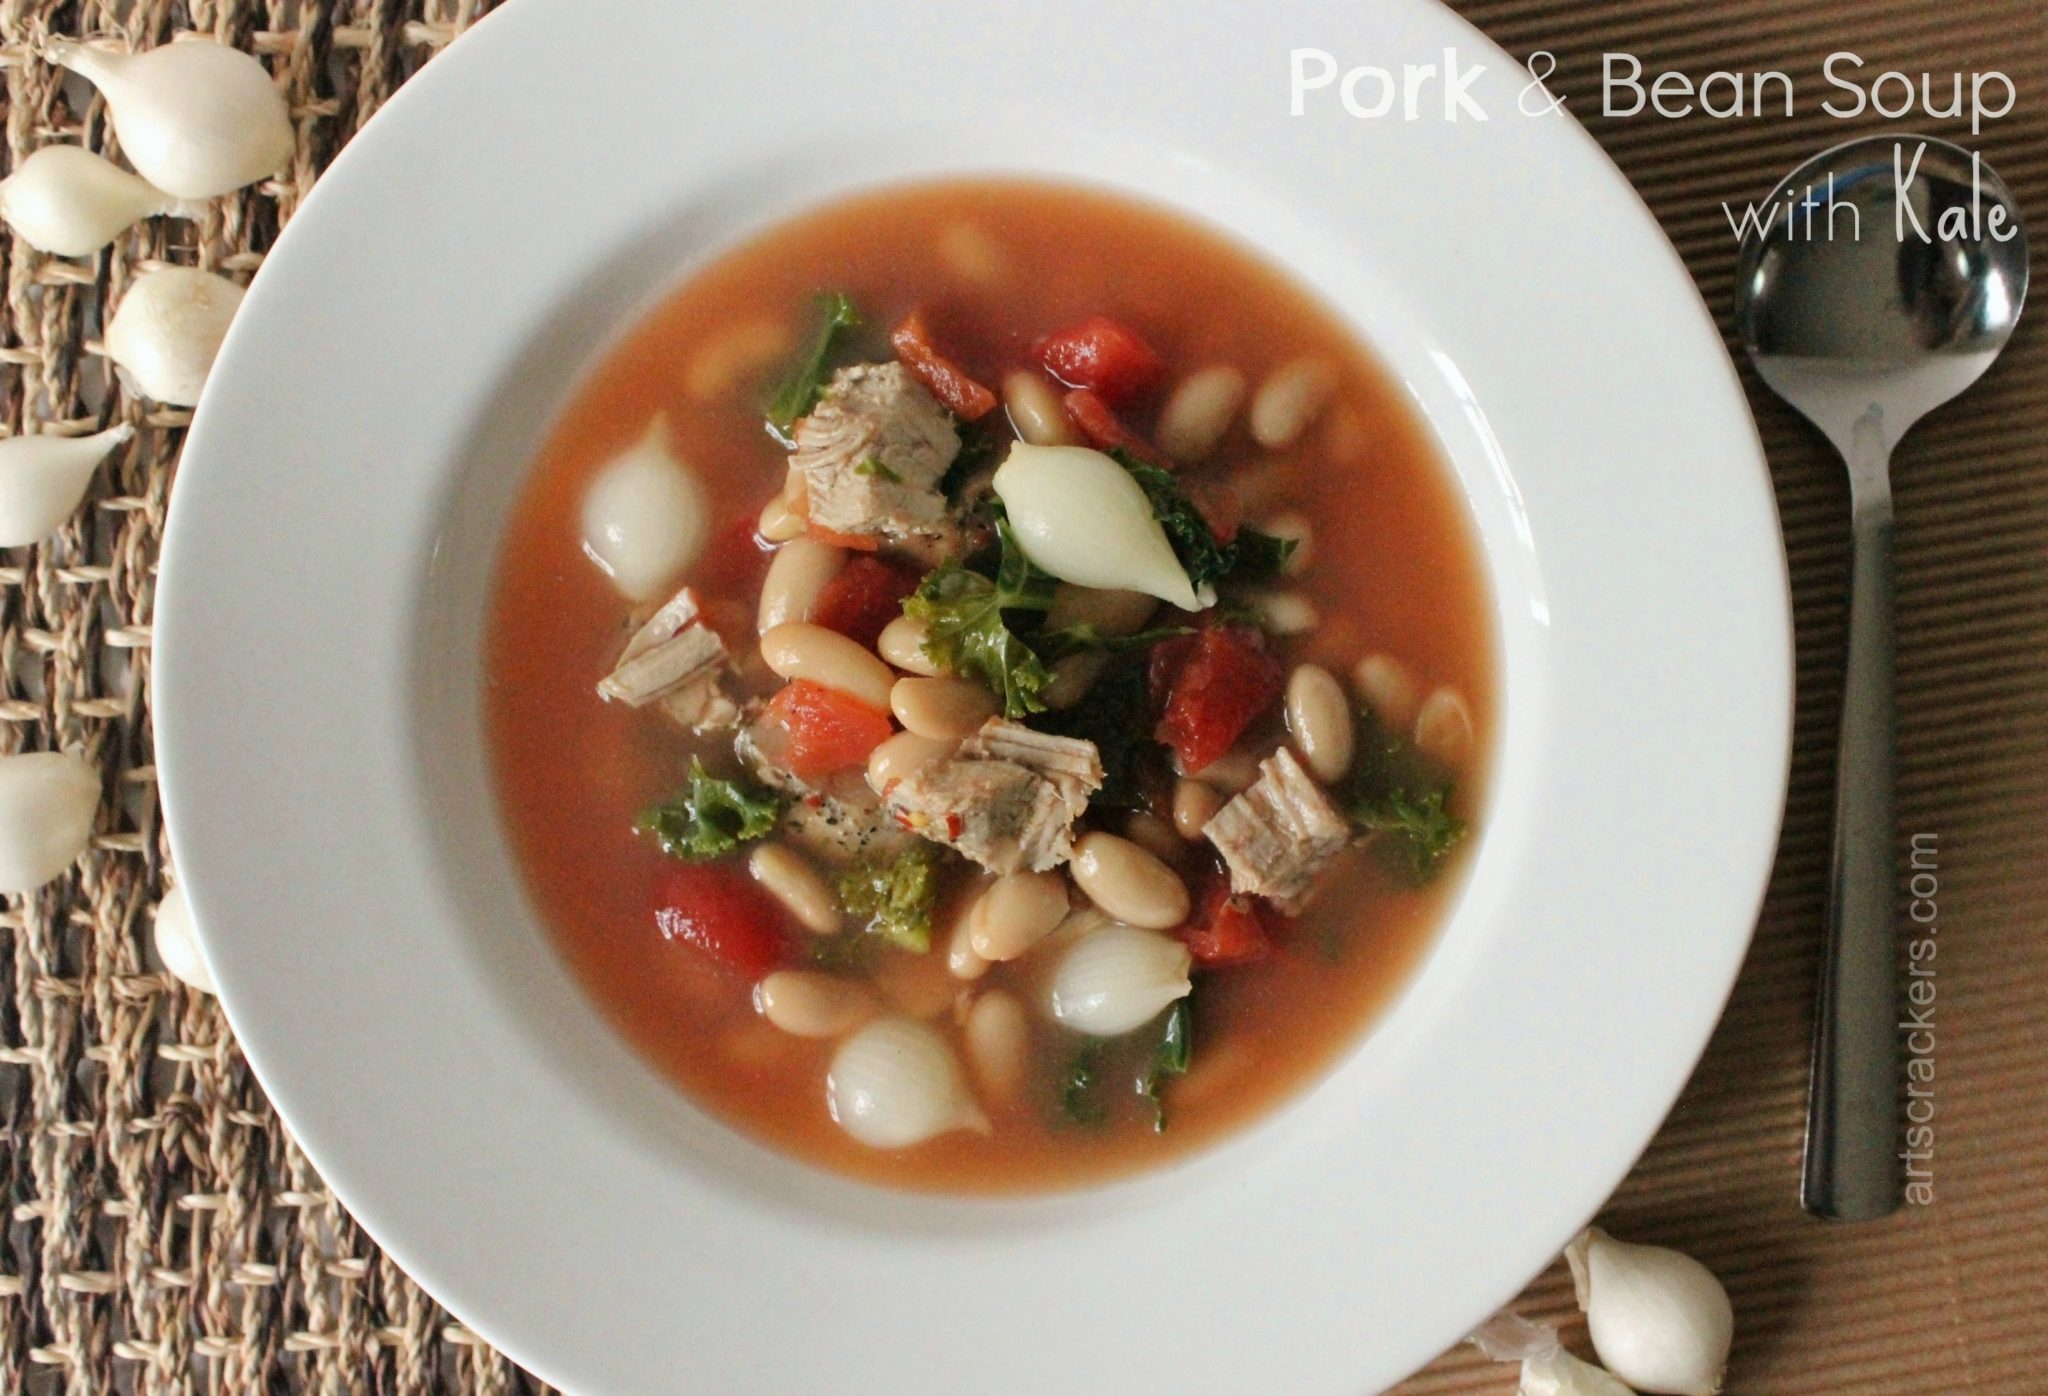 Pork and Bean Soup with Kale